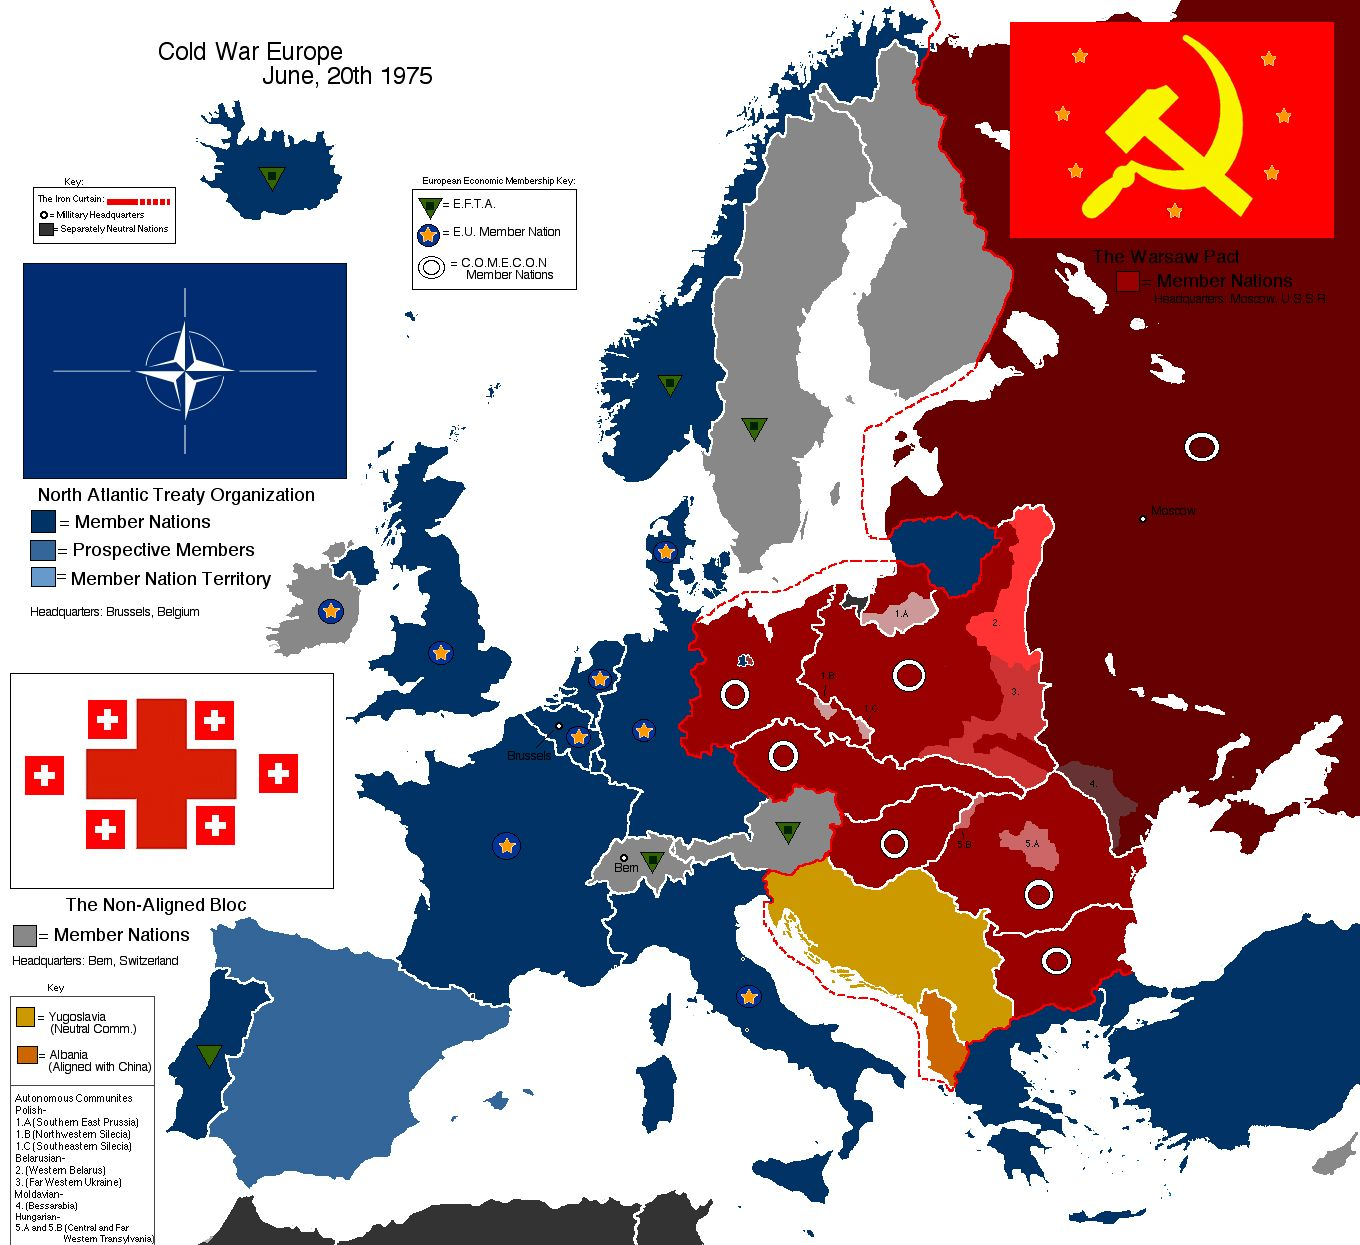 the different changes in world politics that happened after the cold war The cold war was a period of tension and hostility between the united states of america and the soviet union from the mid-40s to the late 80s it began with the end of the second world war it was called the cold war because there was no active war between the two nations, which was probably due to the fear of nuclear escalation.